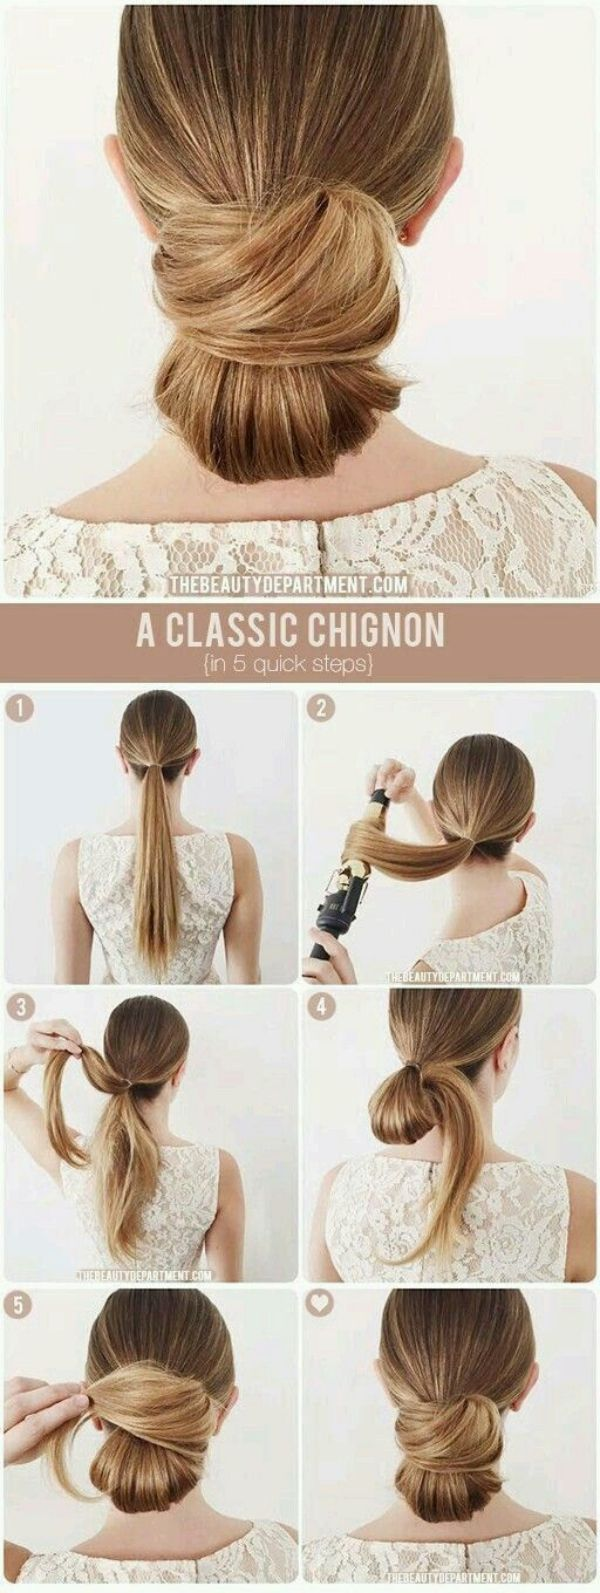 30 Hairstyles That Can be Done in 3 Minutes